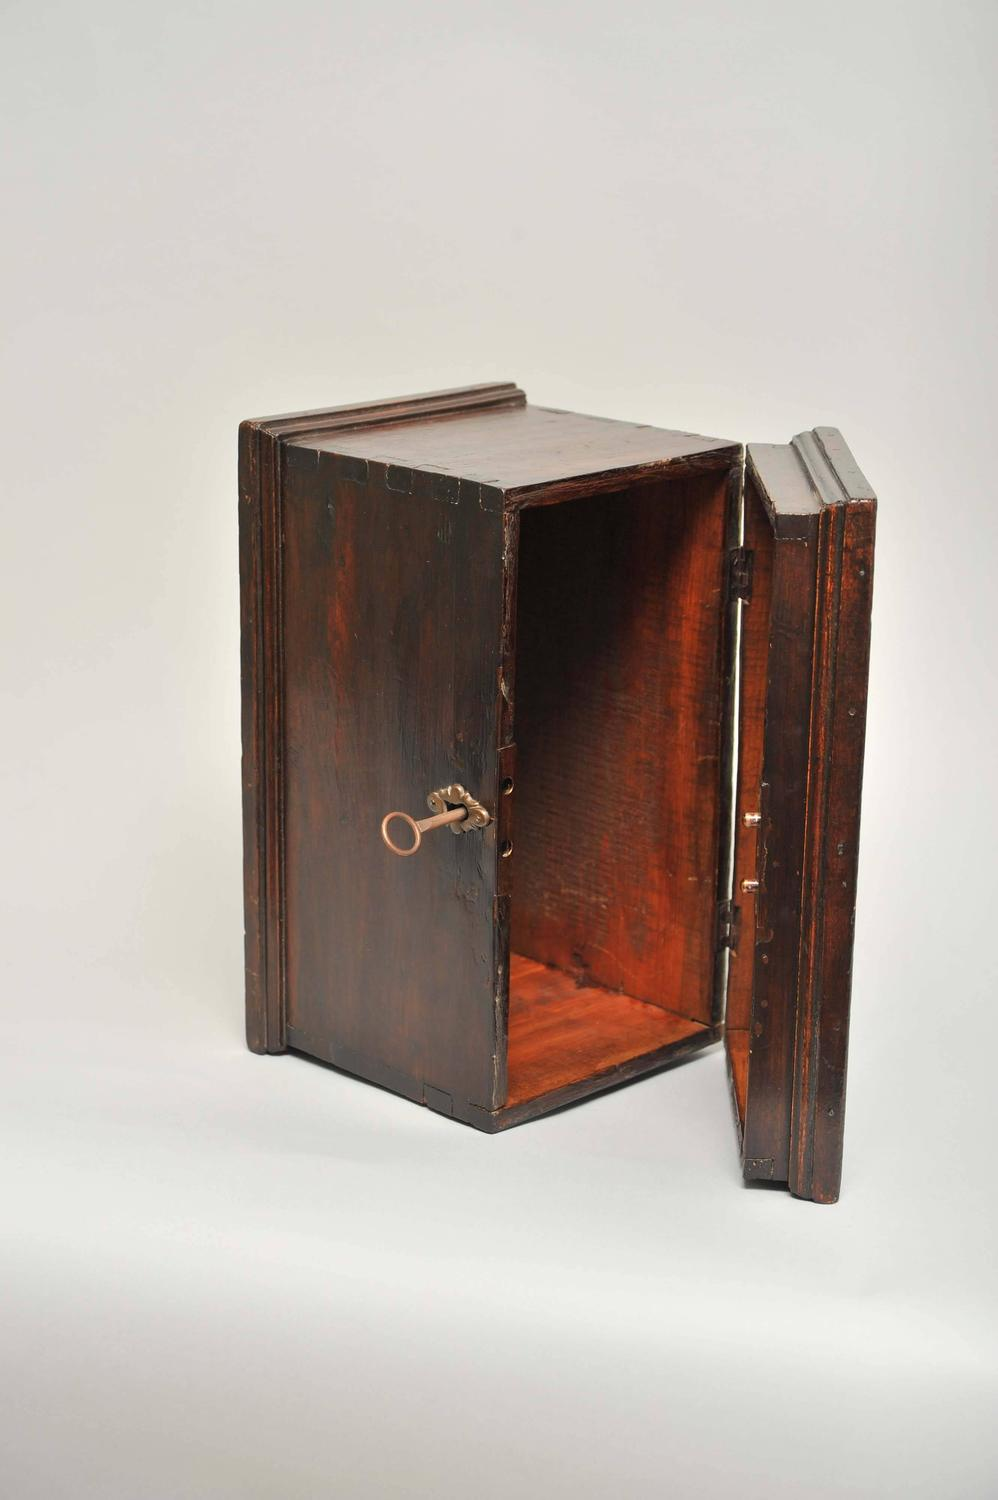 Decorative Boxes That Lock : Early th century north italian wooden box of small